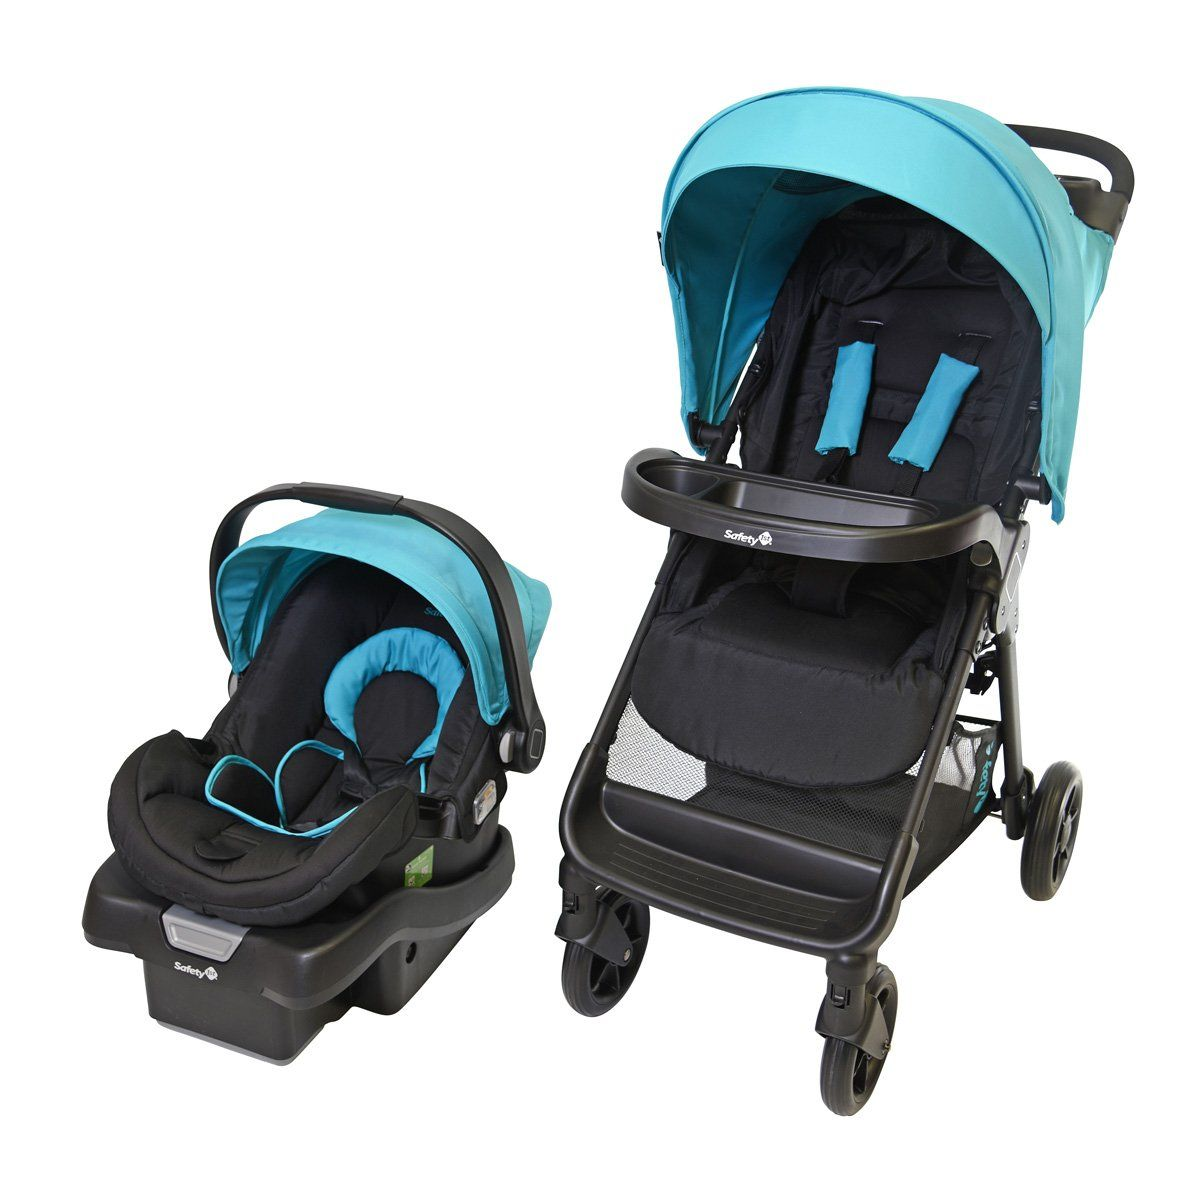 Safety 1st Smooth Ride LX Travel System Blue Travel